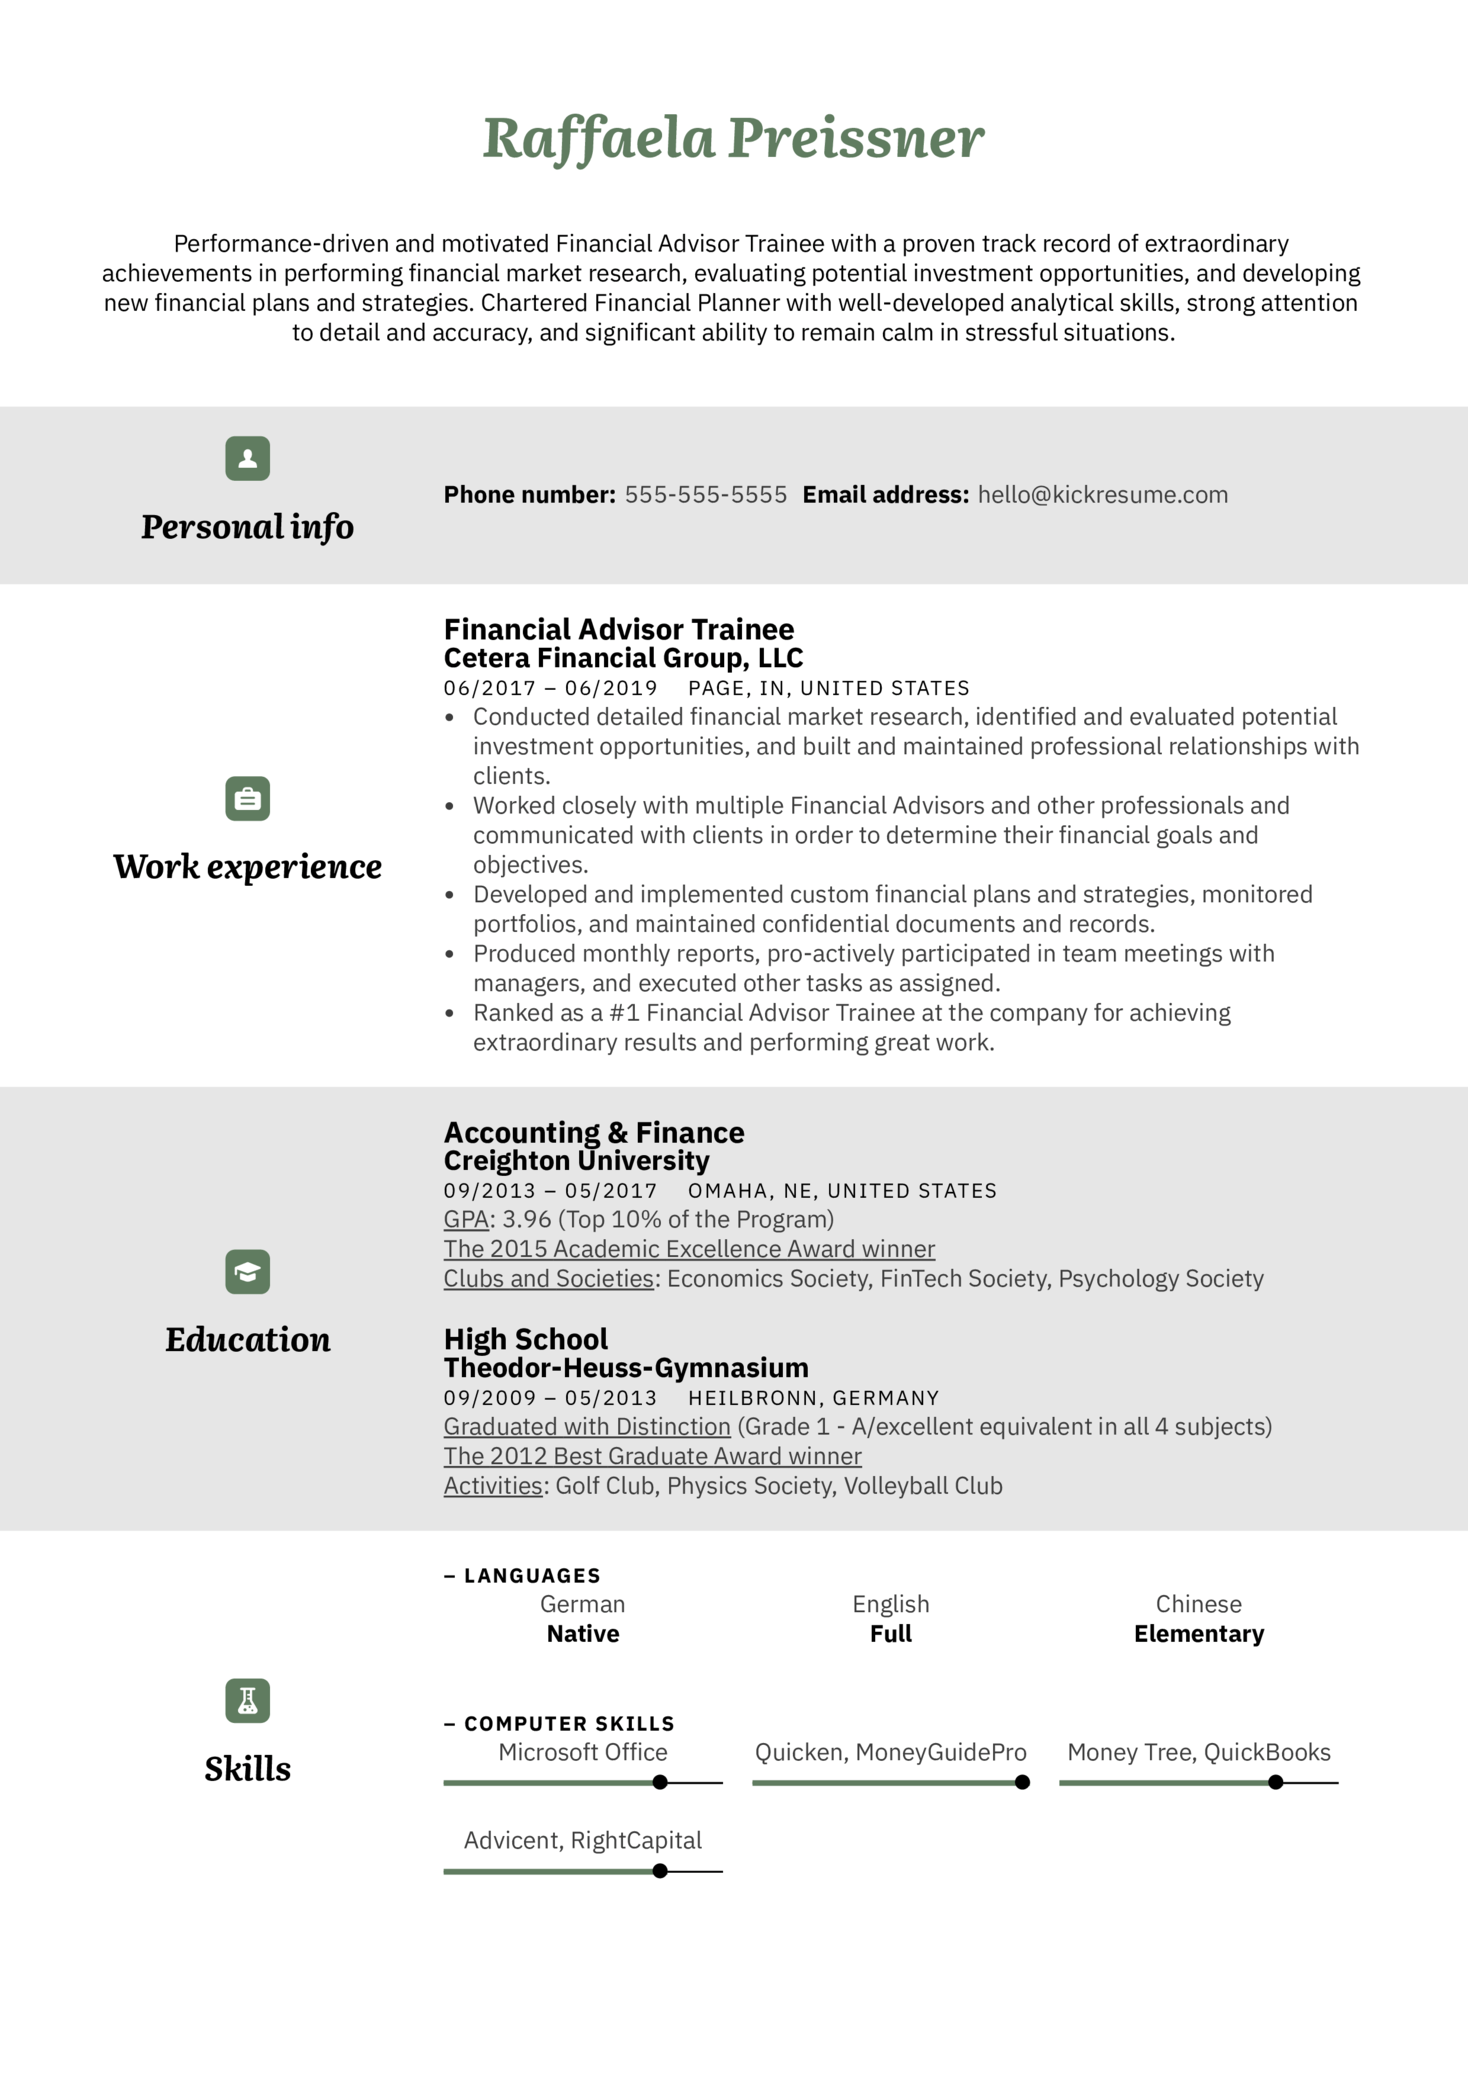 Resume Examples by Real People: Financial Advisor Trainee ...